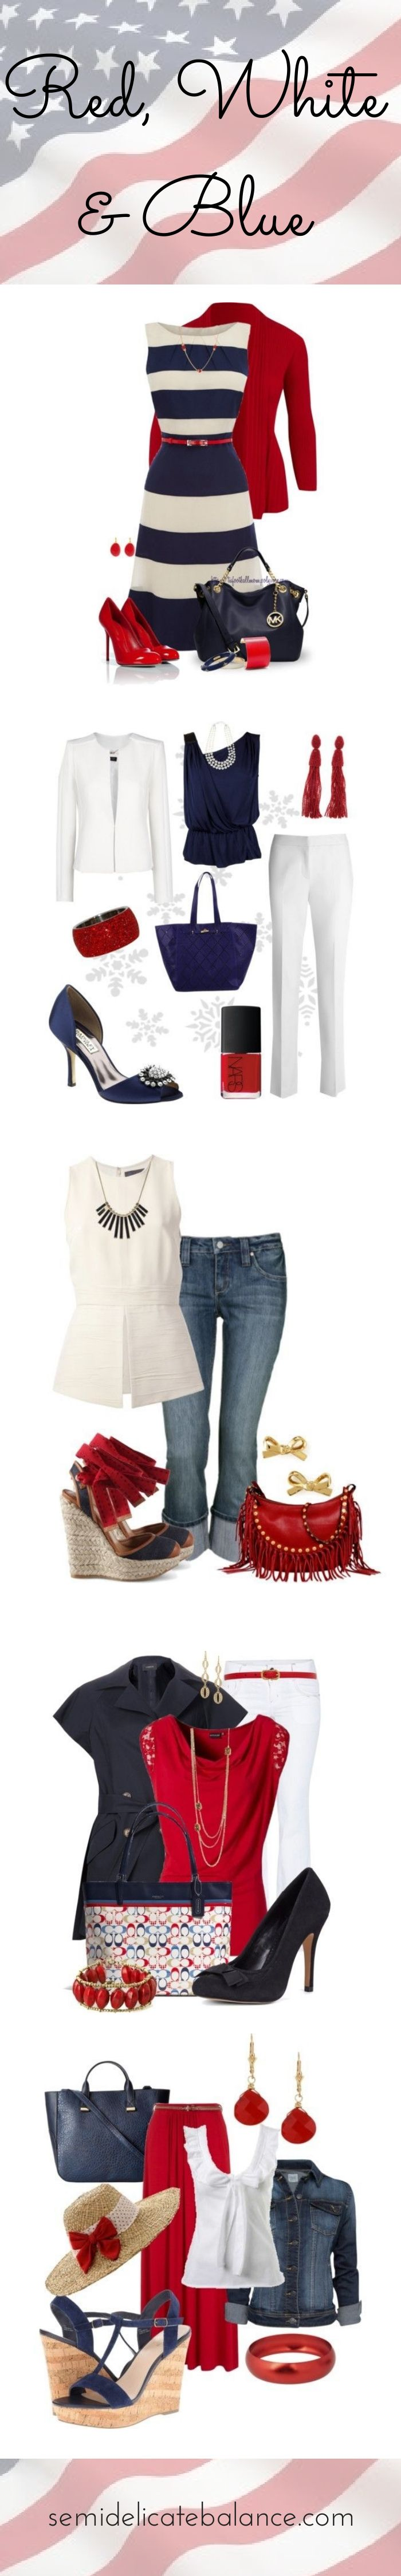 Combinations of red, white, and blue!!